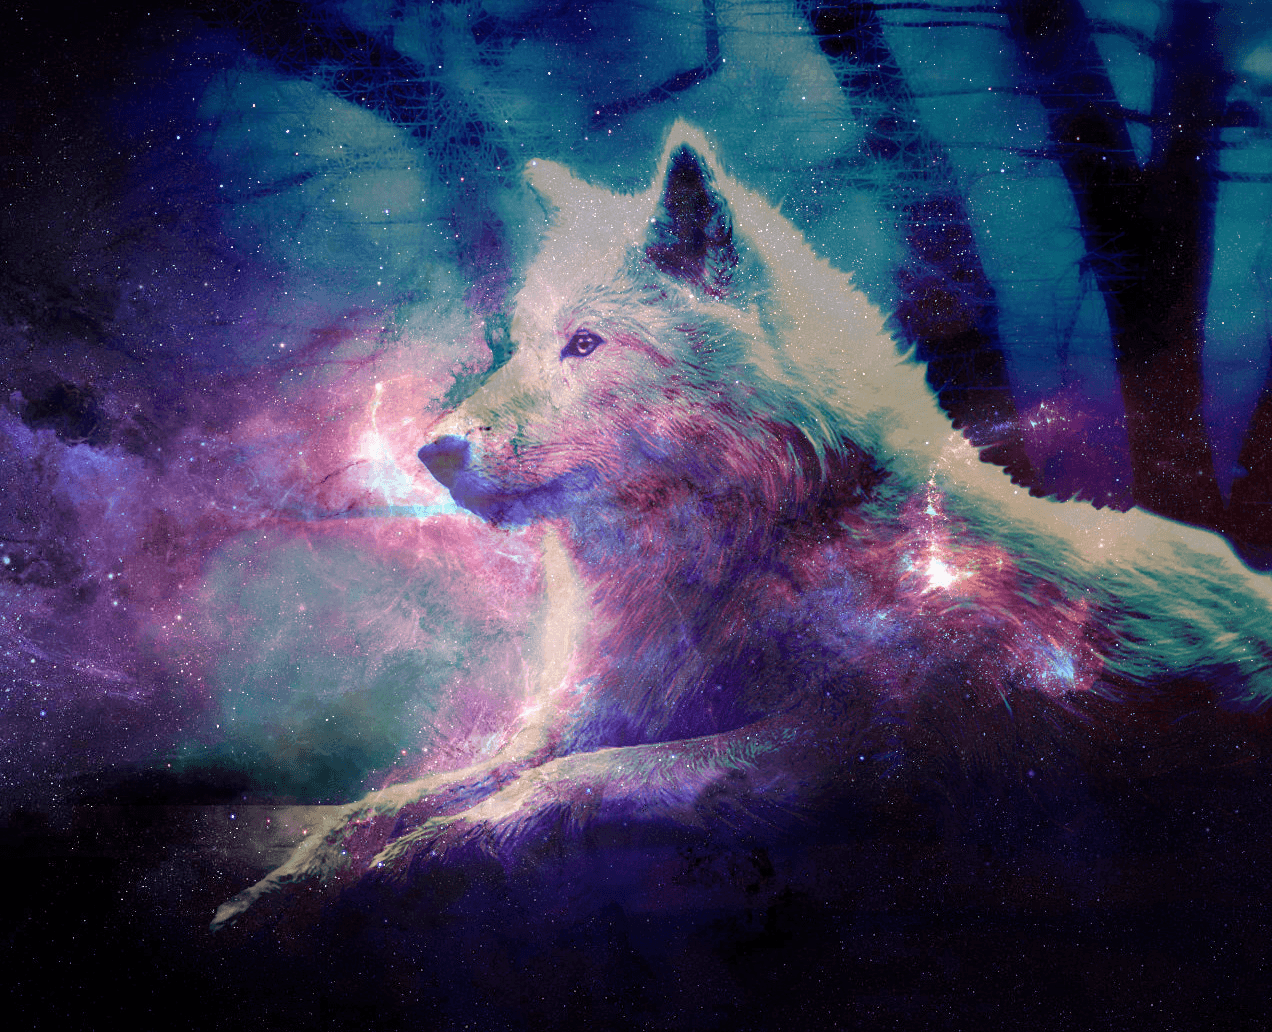 Spiet Galaxy Wolves Wallpapers On Wallpaperdog